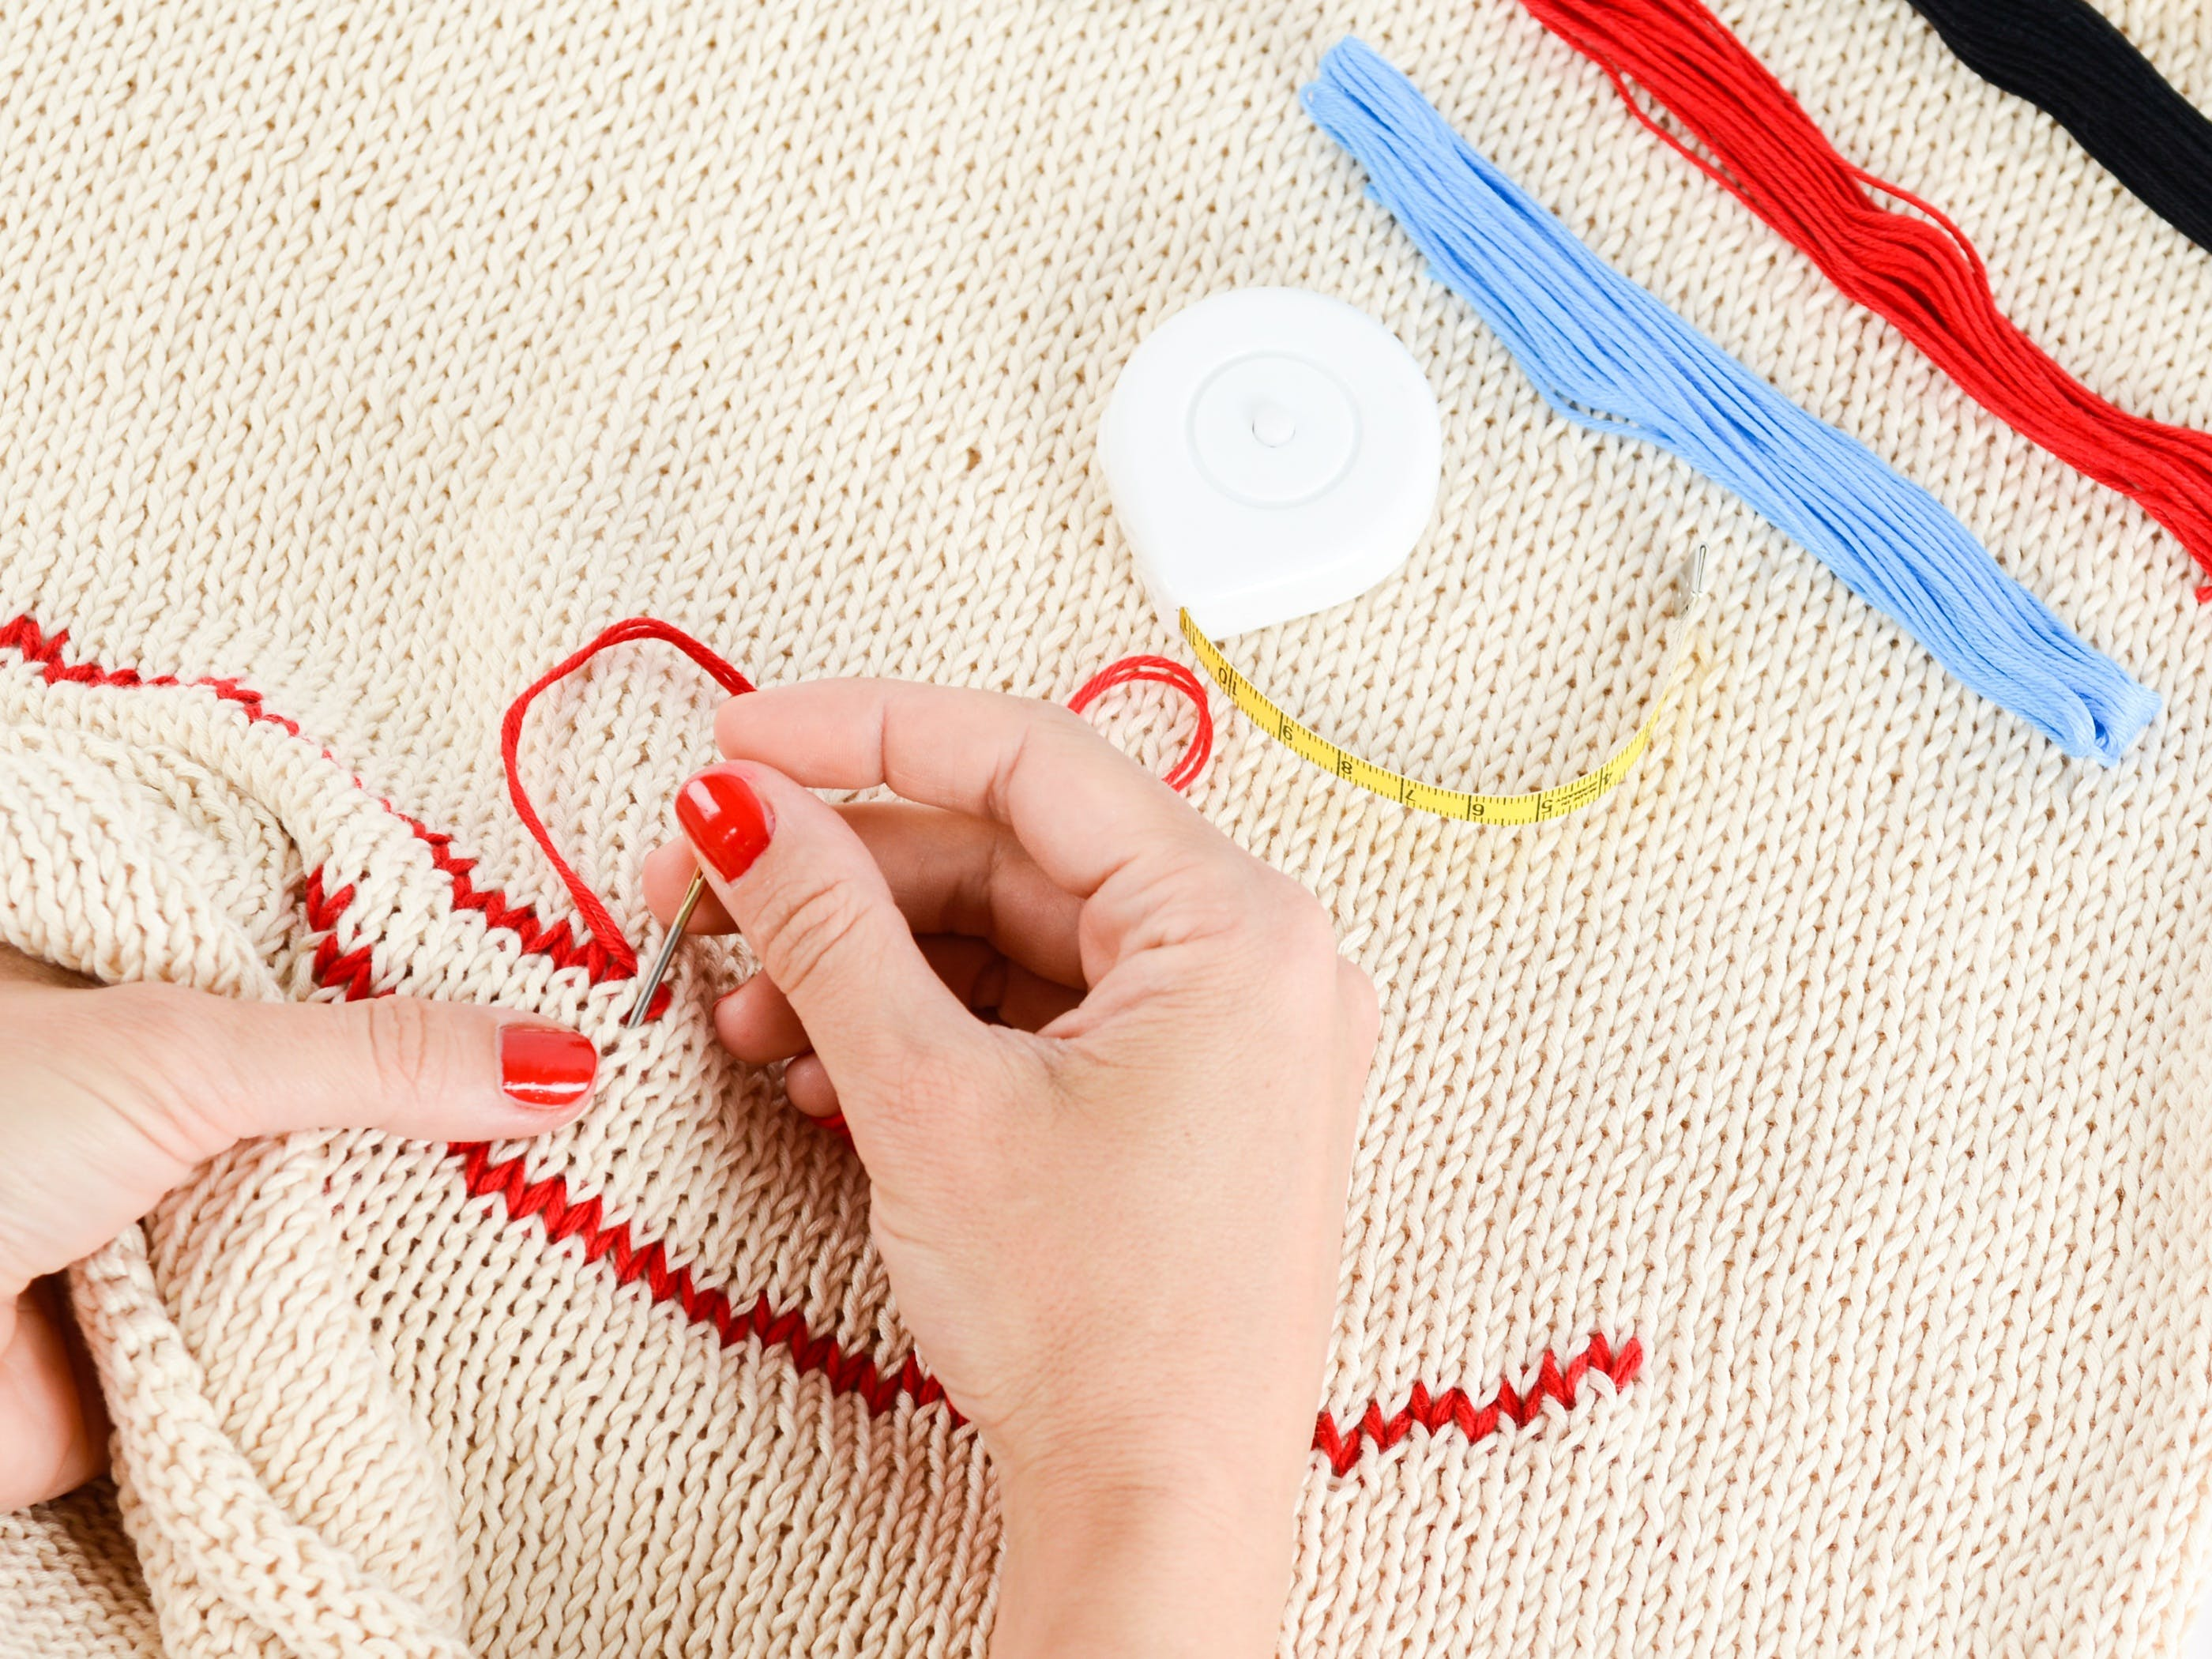 Person Embroidering a Beige Textile